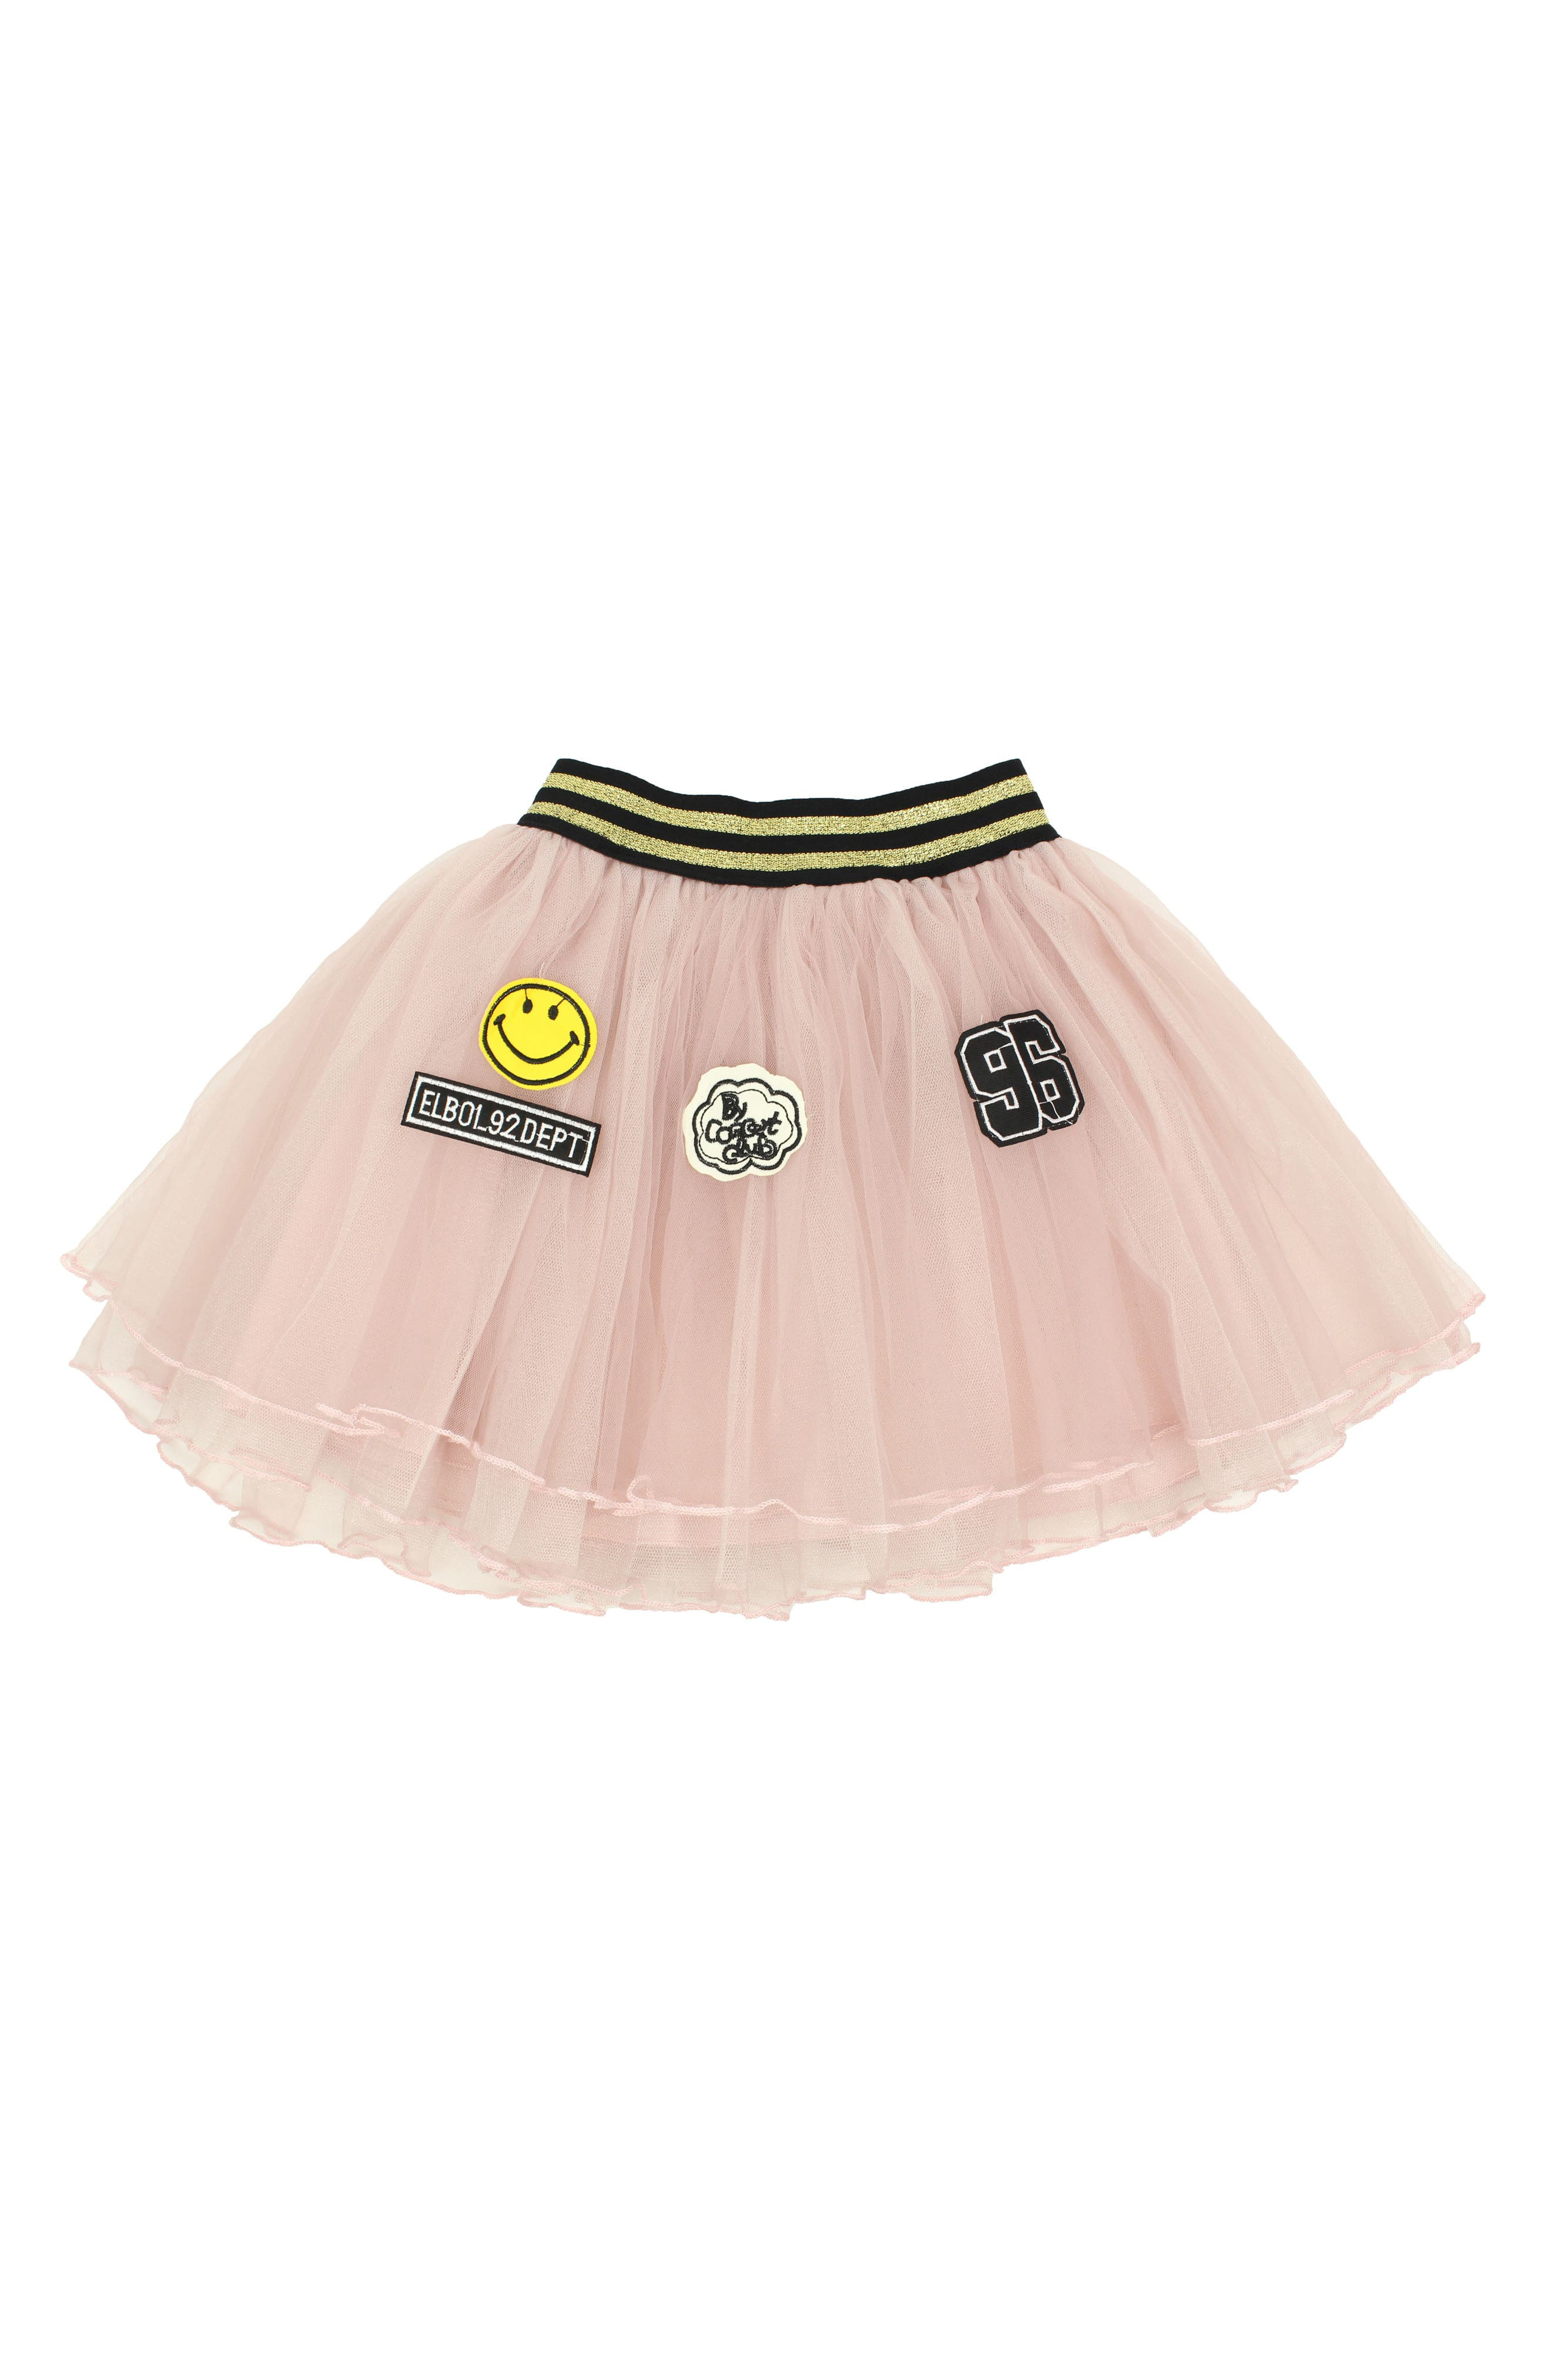 POPATU Varsity Patches Tulle Skirt, Main, color, PINK